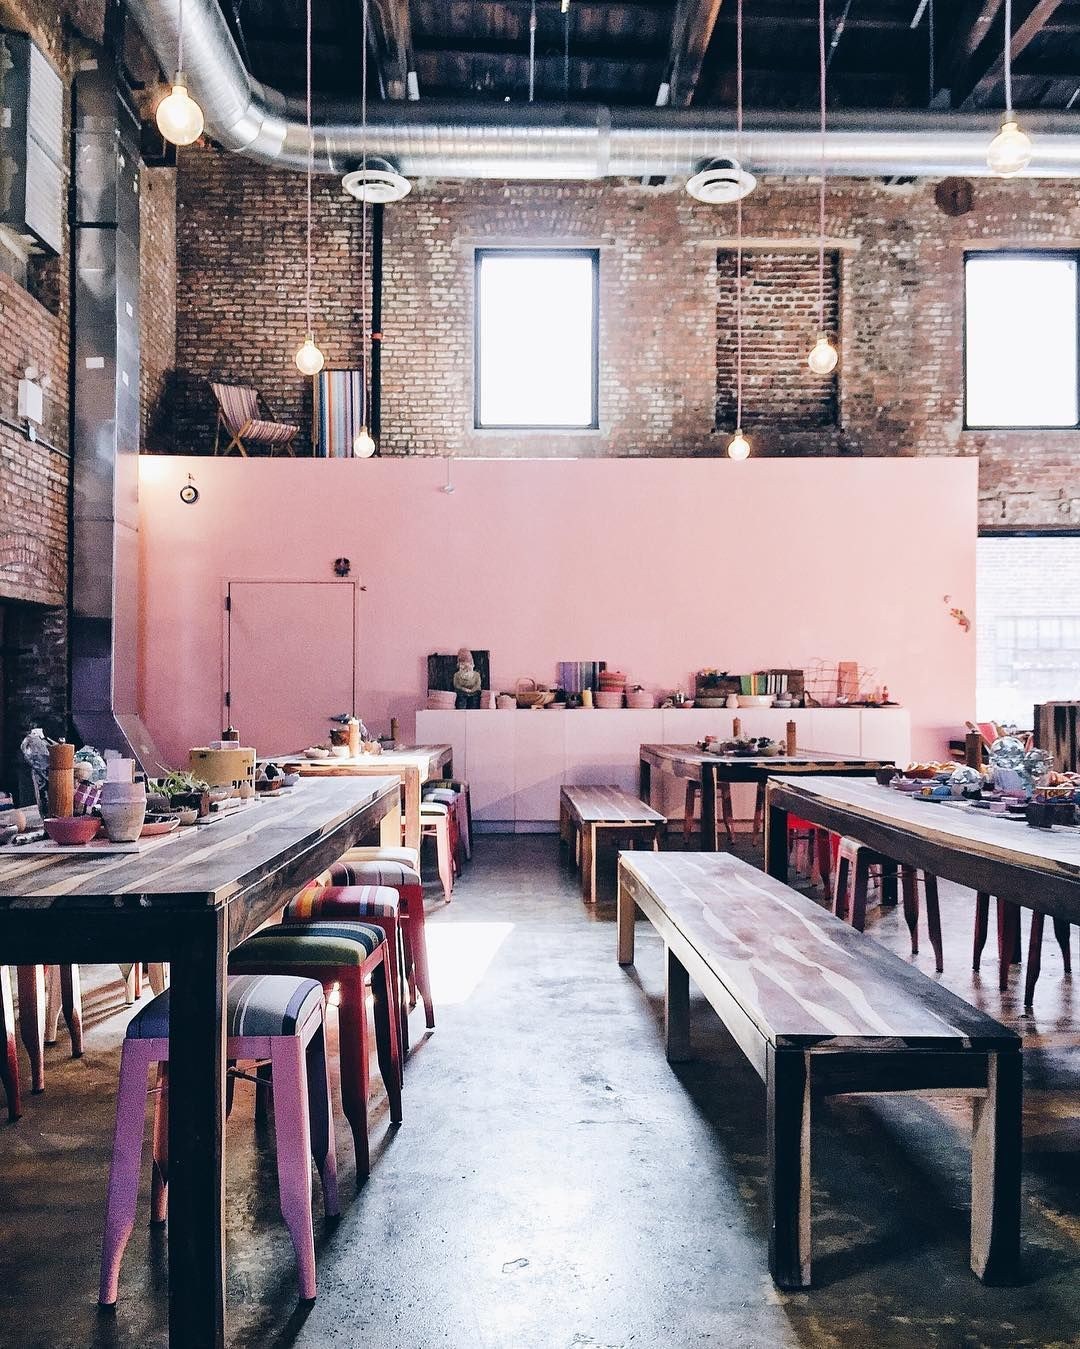 Pantone Cafe Is The Most Instagrammable Restaurant Ever